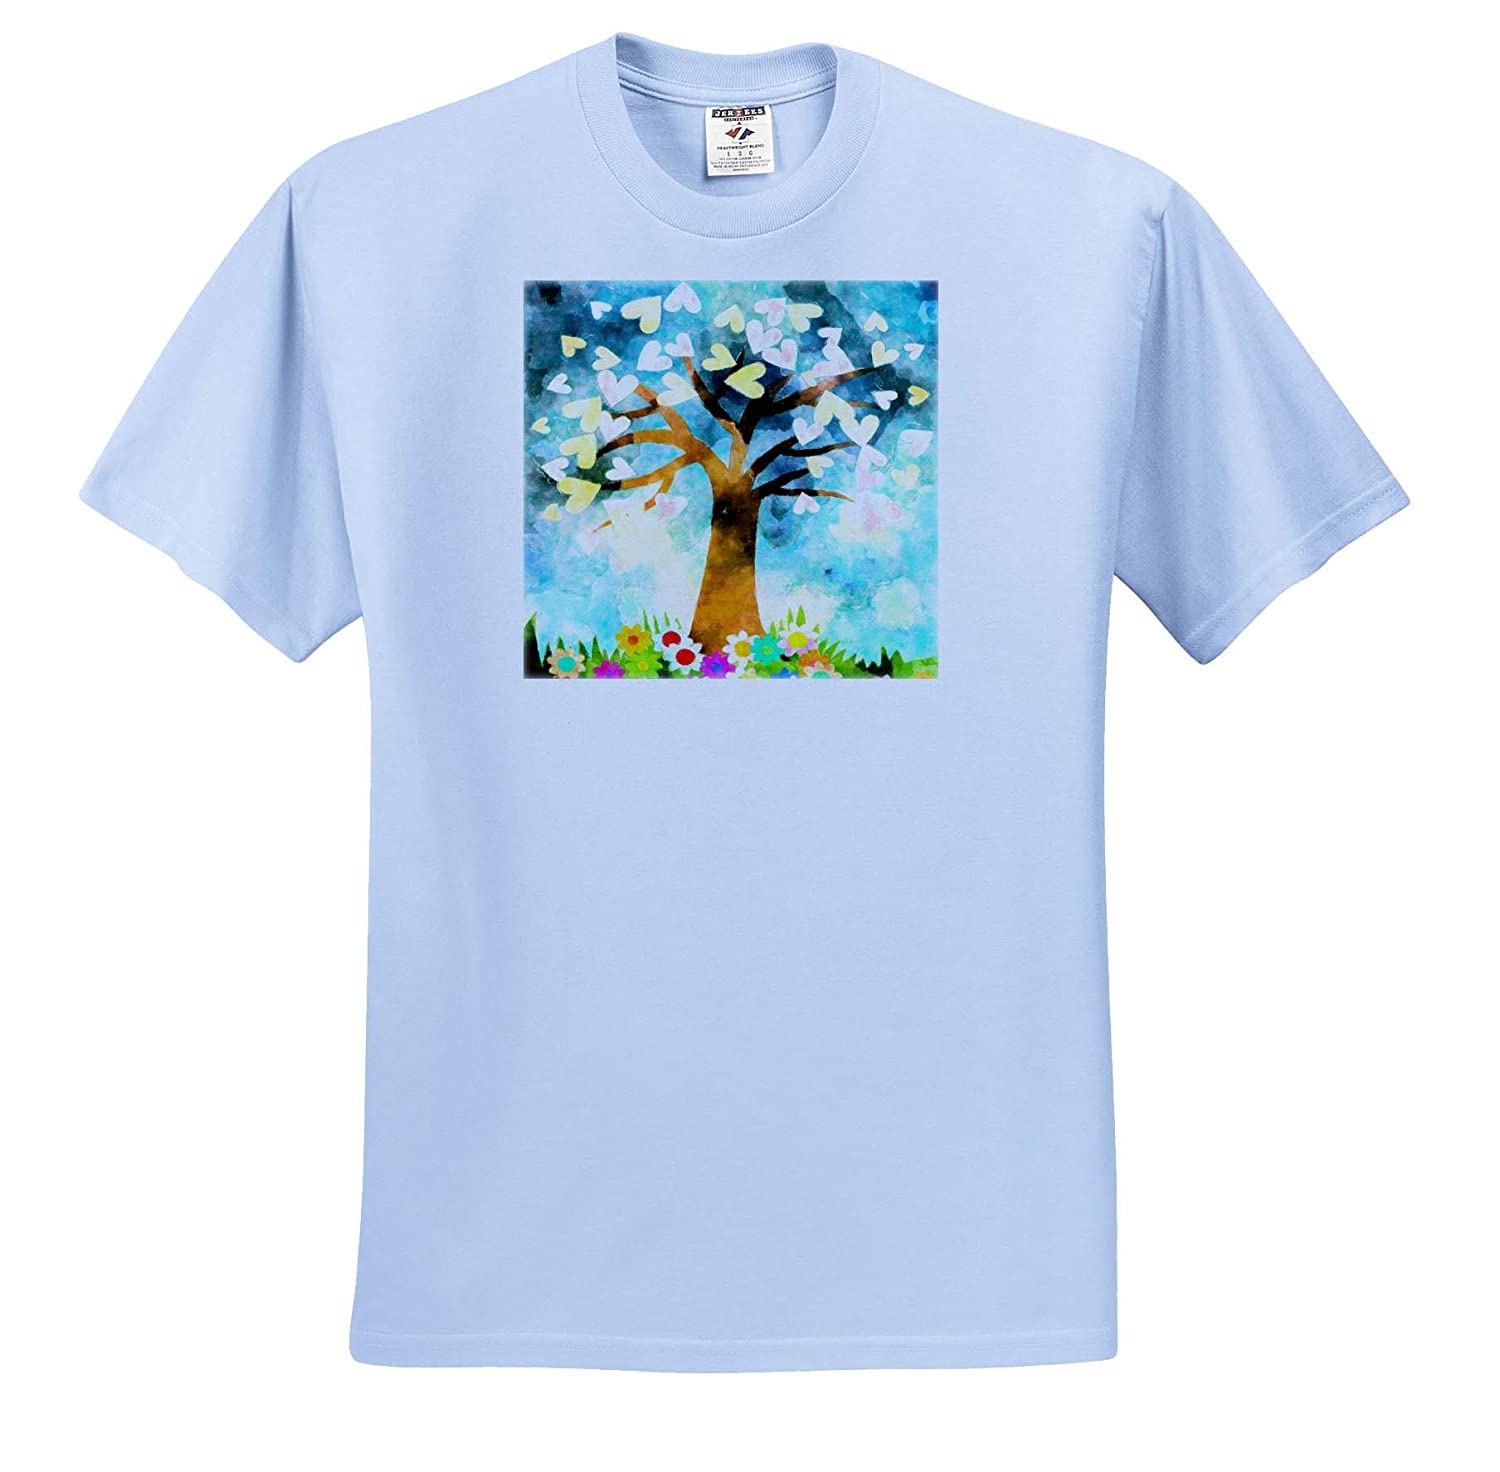 3dRose Lens Art by Florene T-Shirts Image of Painted Fantasy Tree with Hearts and Flowers Fall Art